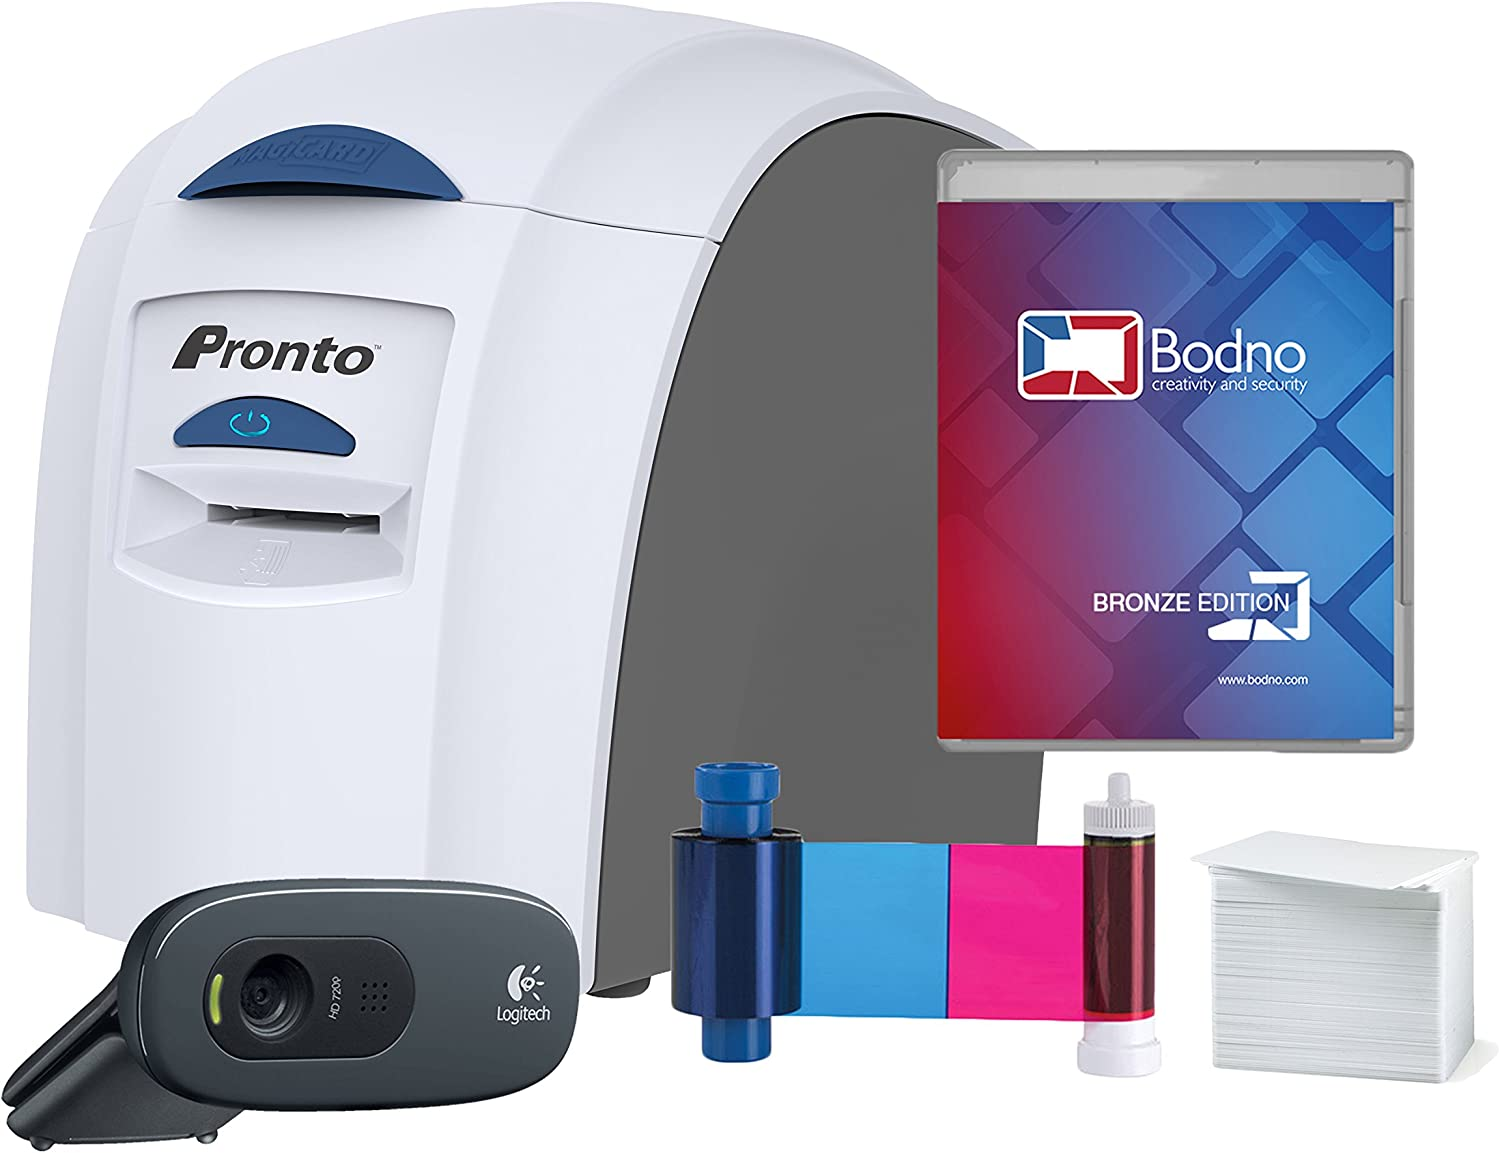 Magicard Pronto ID Card Printer & Complete Supplies Package with Bodno ID Software and Camera